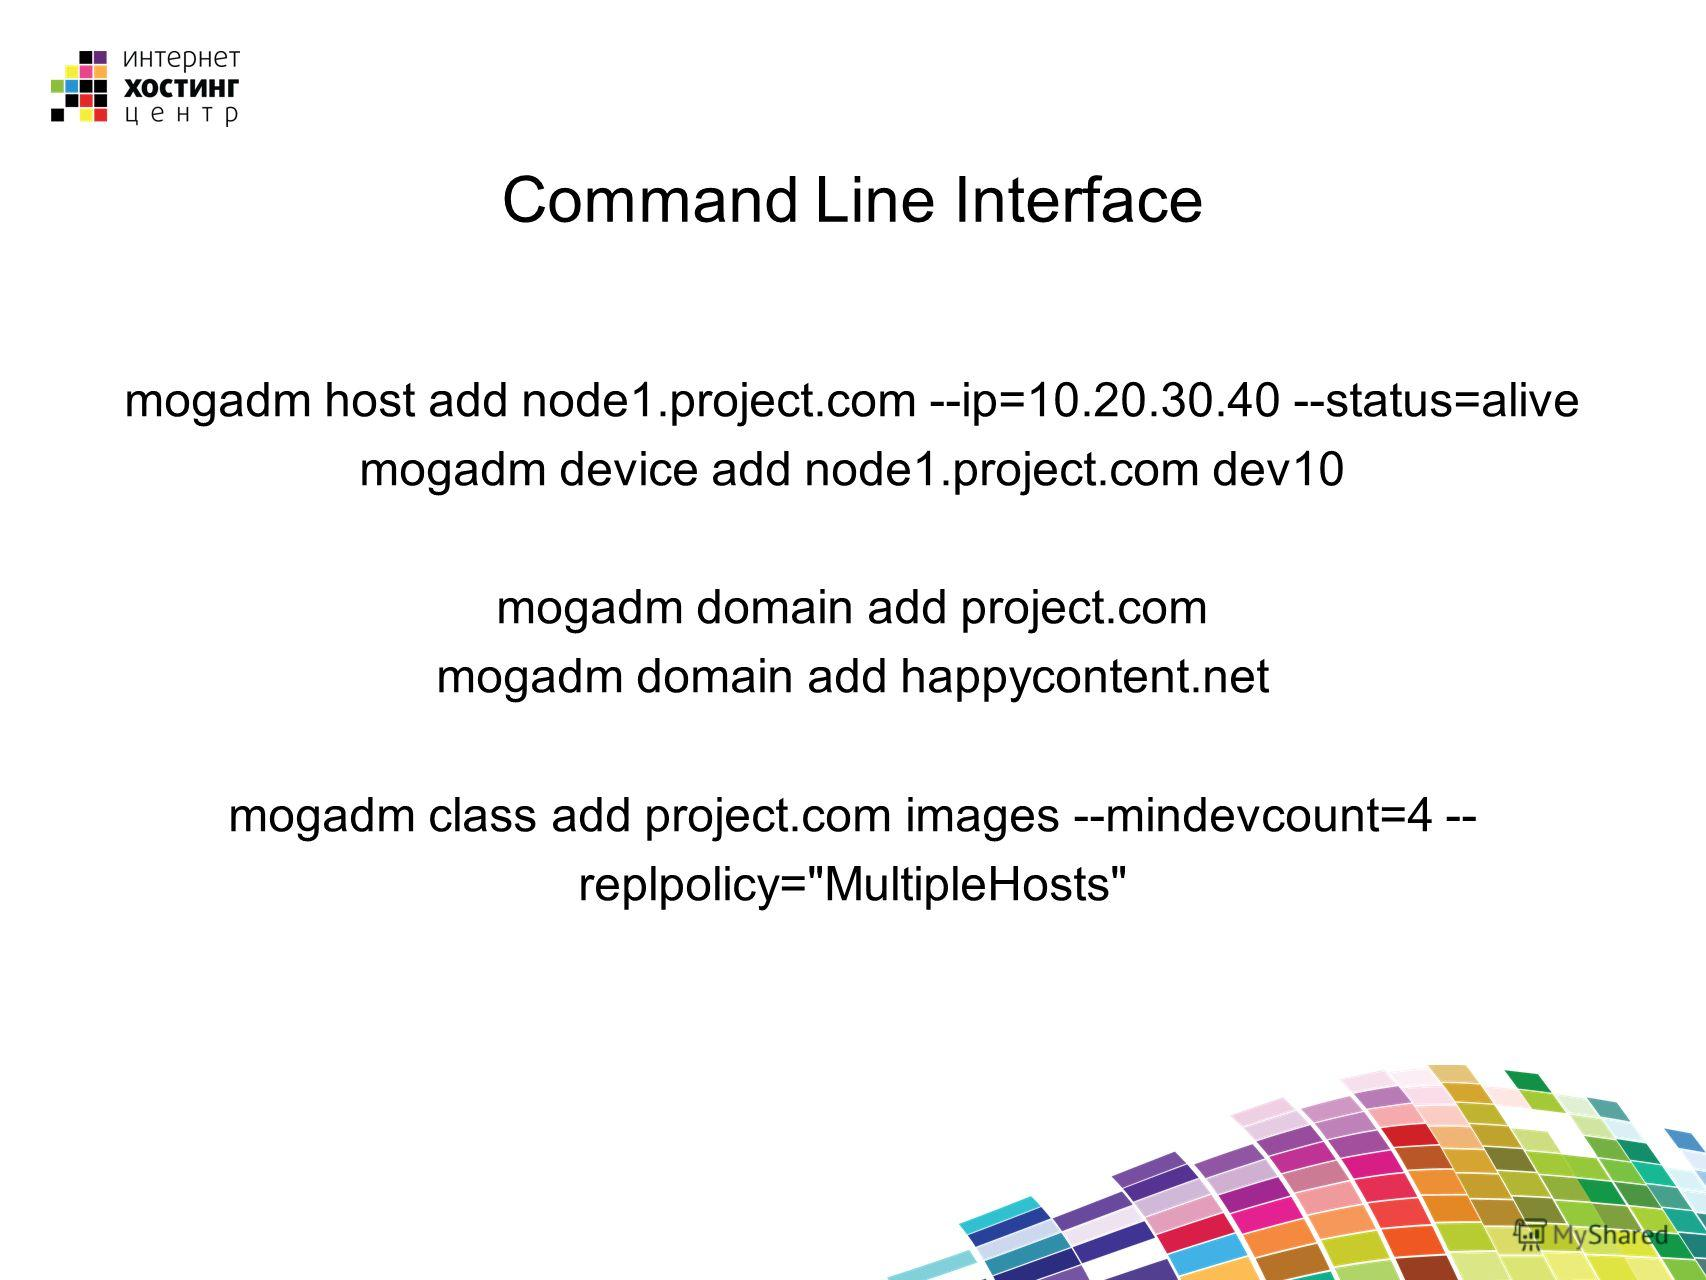 Command Line Interface mogadm host add node1.project.com --ip=10.20.30.40 --status=alive mogadm device add node1.project.com dev10 mogadm domain add project.com mogadm domain add happycontent.net mogadm class add project.com images --mindevcount=4 --